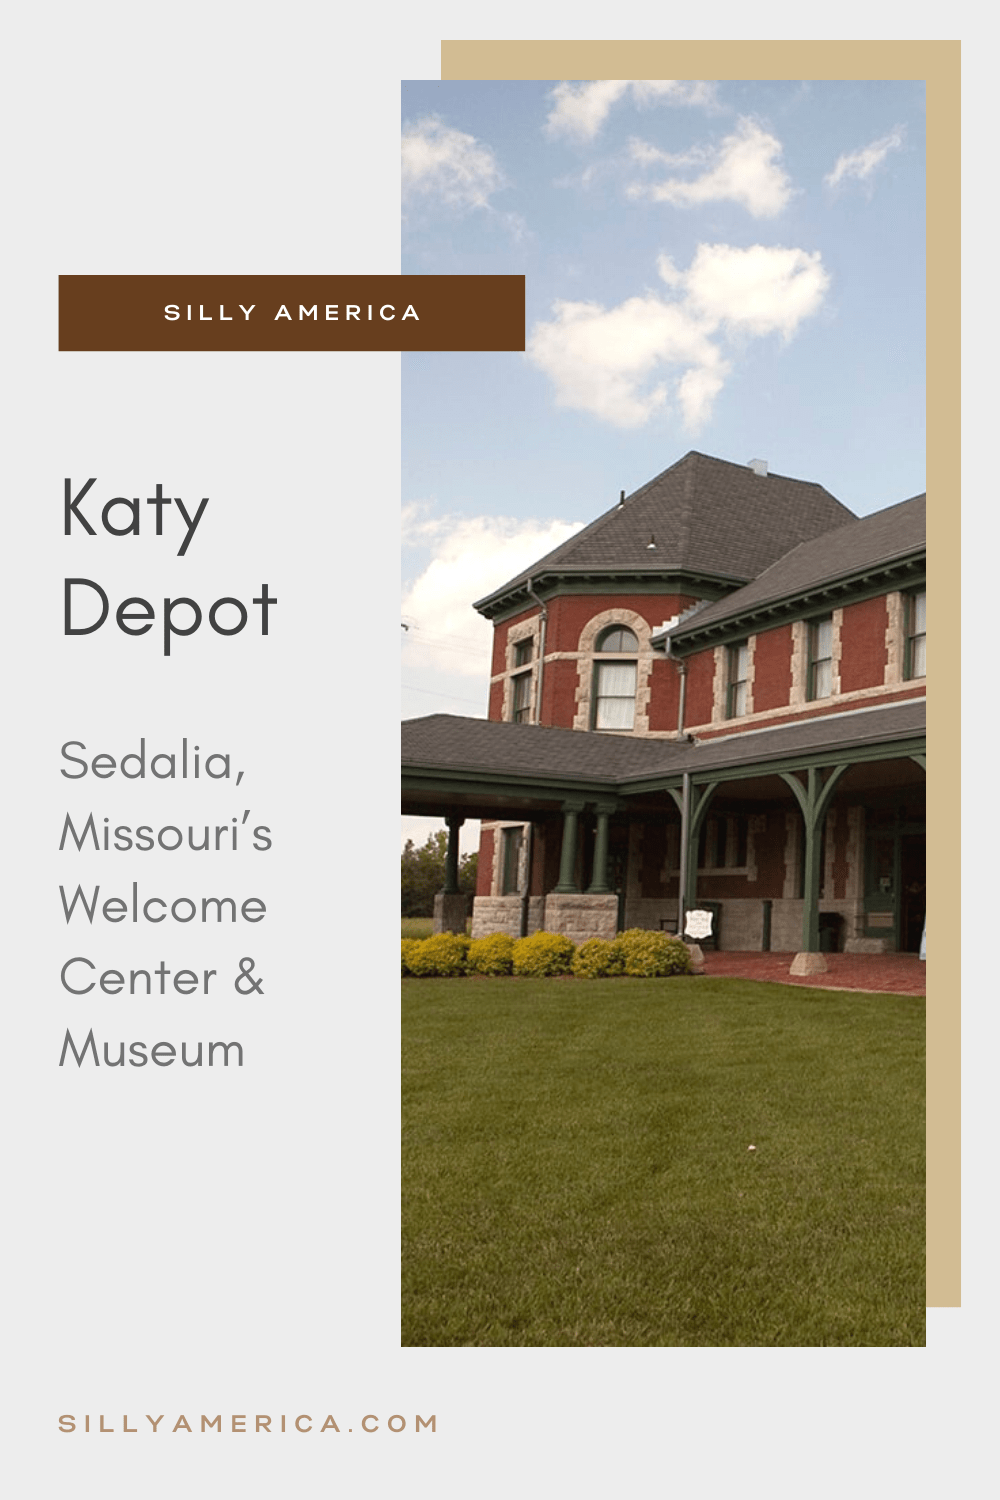 Built in 1896, the Katy Depot in Sedalia, Missouri was once a fully-functioning railroad station. Today, it serves as Sedalia's official welcome center. Visit the public art and historical displays on your Missouri road trip at this roadside attraction.  #MissouriRoadsideAttractions #MissouriRoadsideAttraction #RoadsideAttractions #RoadsideAttraction #RoadTrip #MissouriRoadTrip #MissouriRoadTripMap #PlacestoVisitinMissouri #MissouriRoadTripIdeas #MissouriTravelRoadTrip #RoadTrip